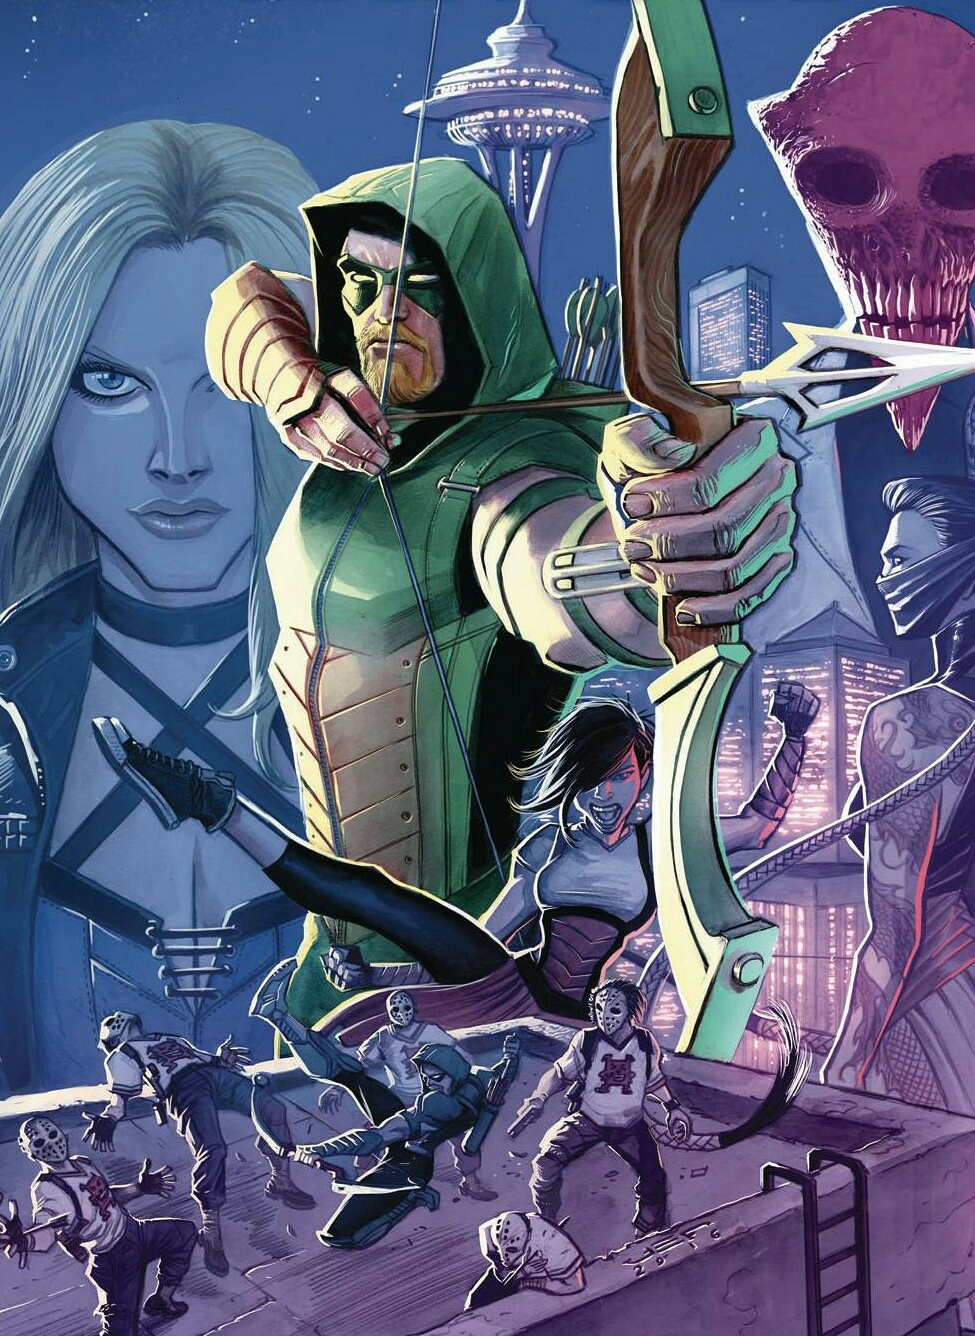 Green Arrow #1 cover art